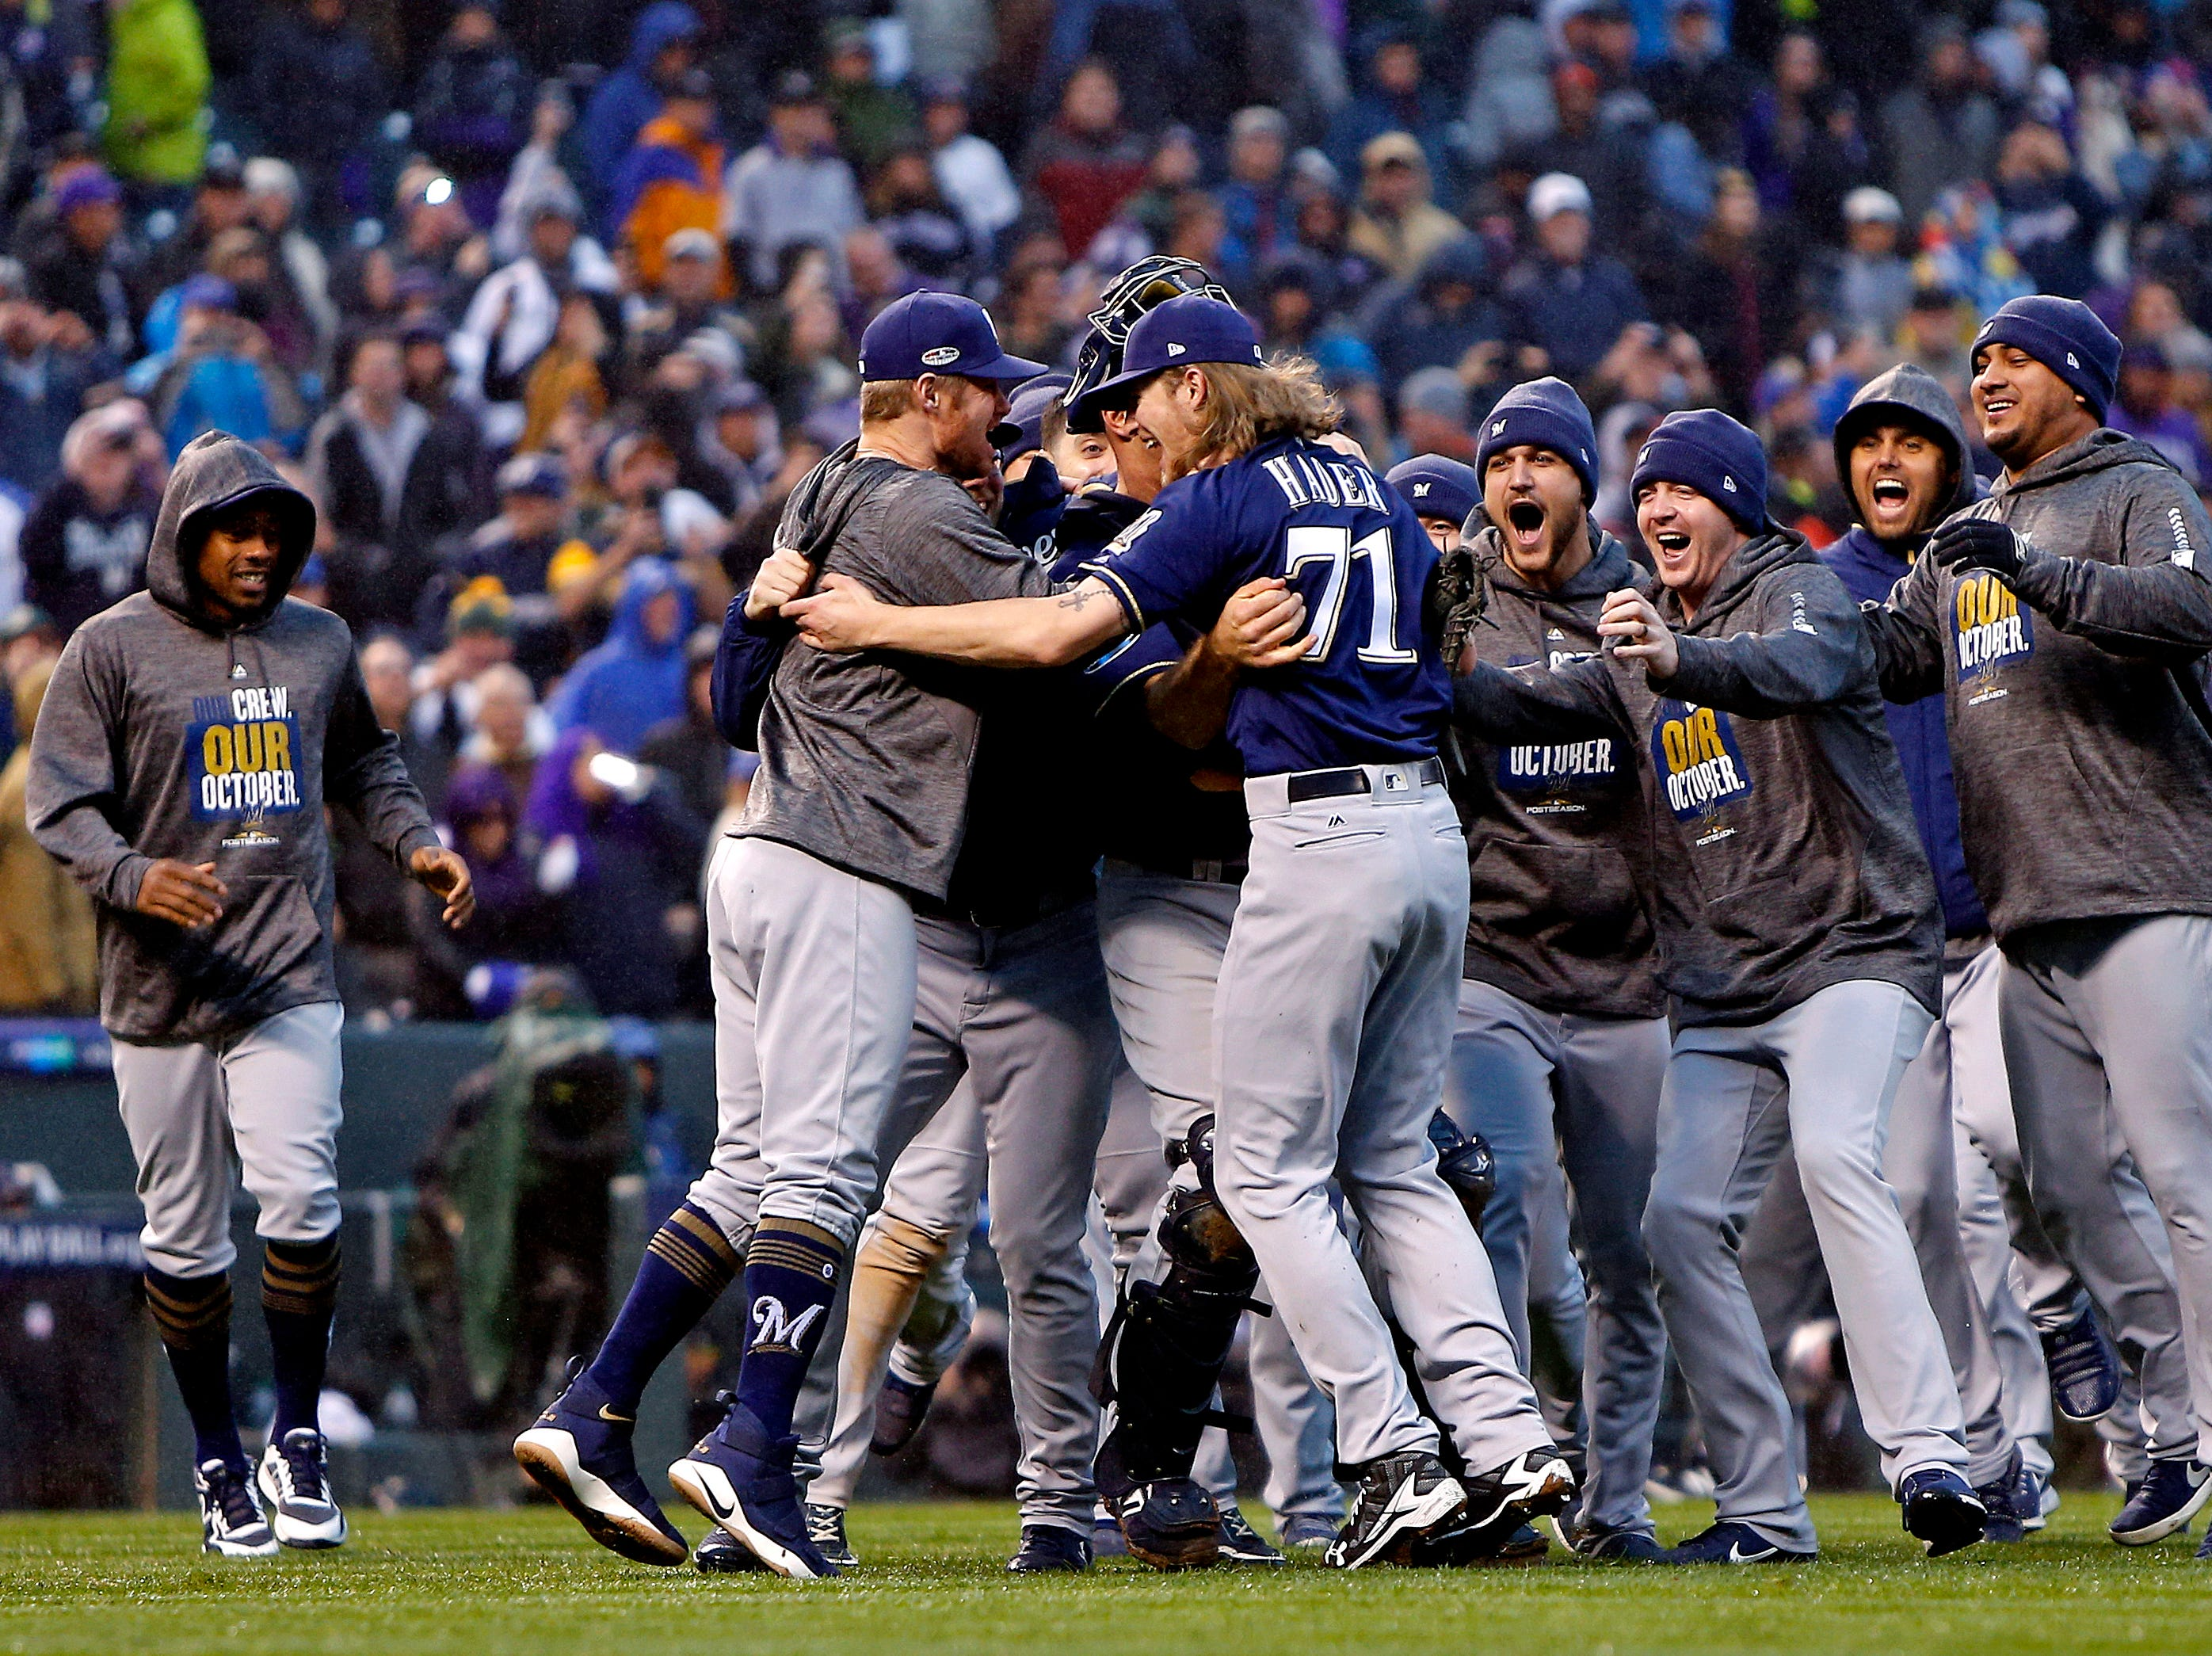 NLDS Game 3: Brewers players celebrate after the 6-0 win to sweep the series.